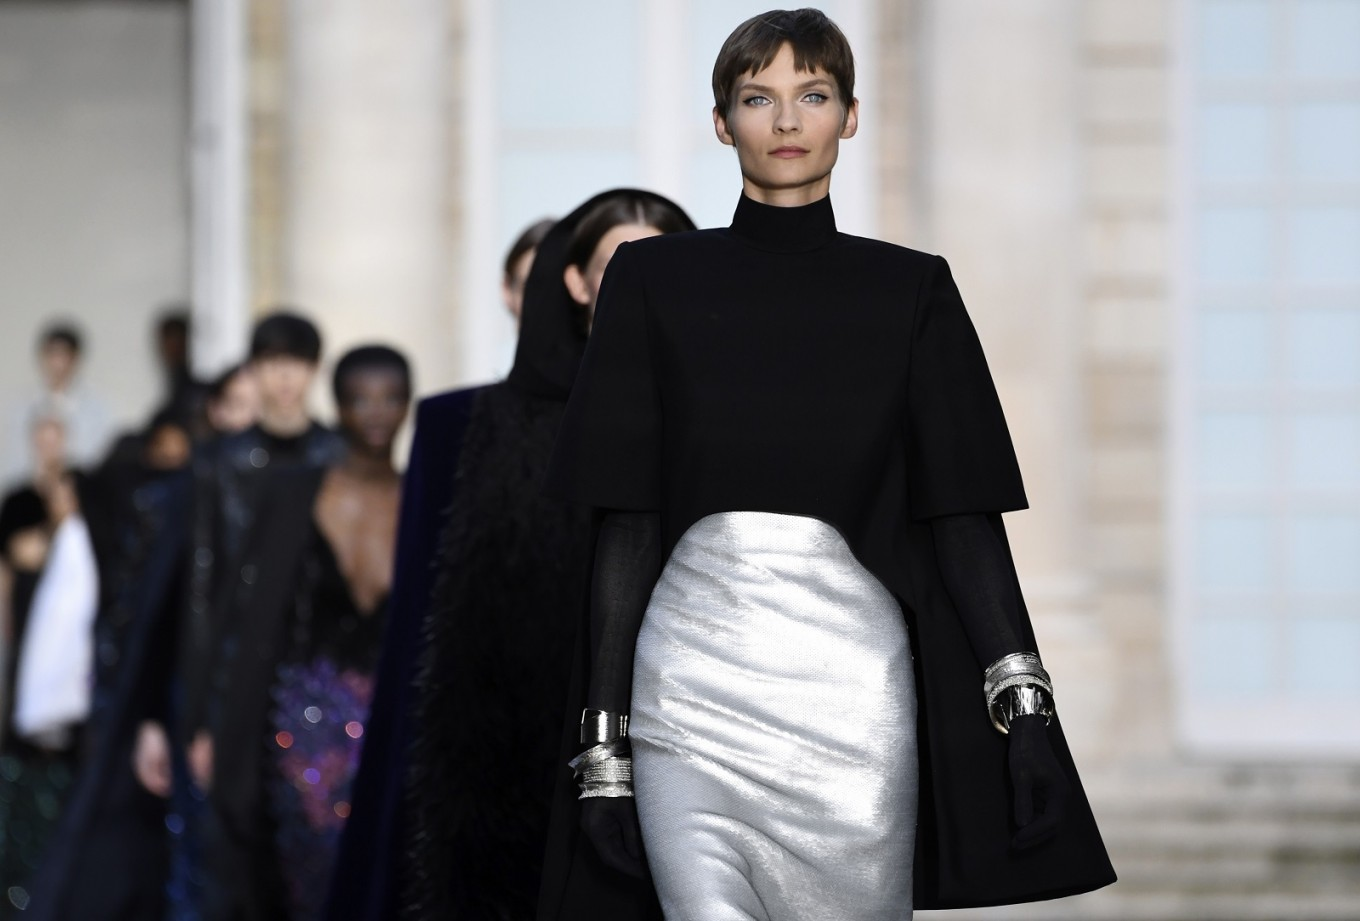 Givenchy Homage On First Day Of Paris Haute Couture Shows Lifestyle The Jakarta Post